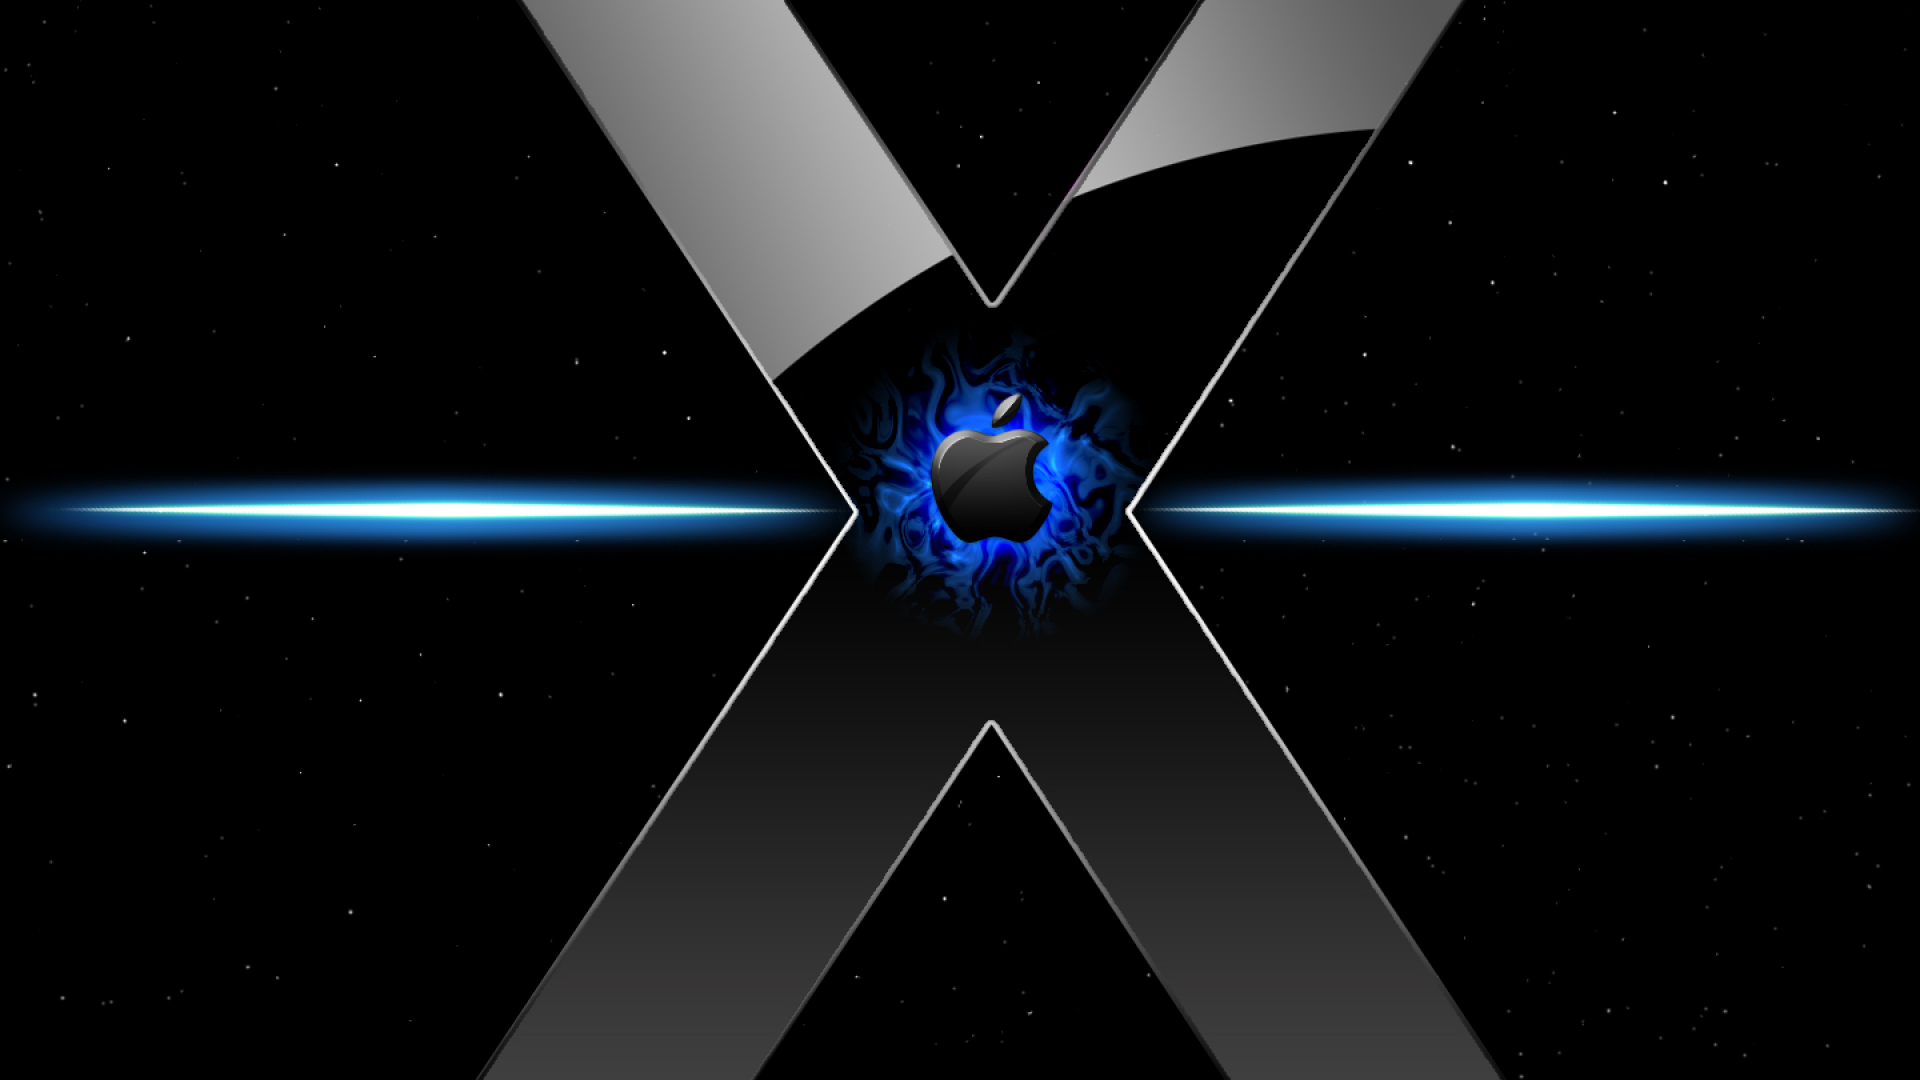 Blue Os X Wallpaper High Definition High Resolution Hd Wallpapers